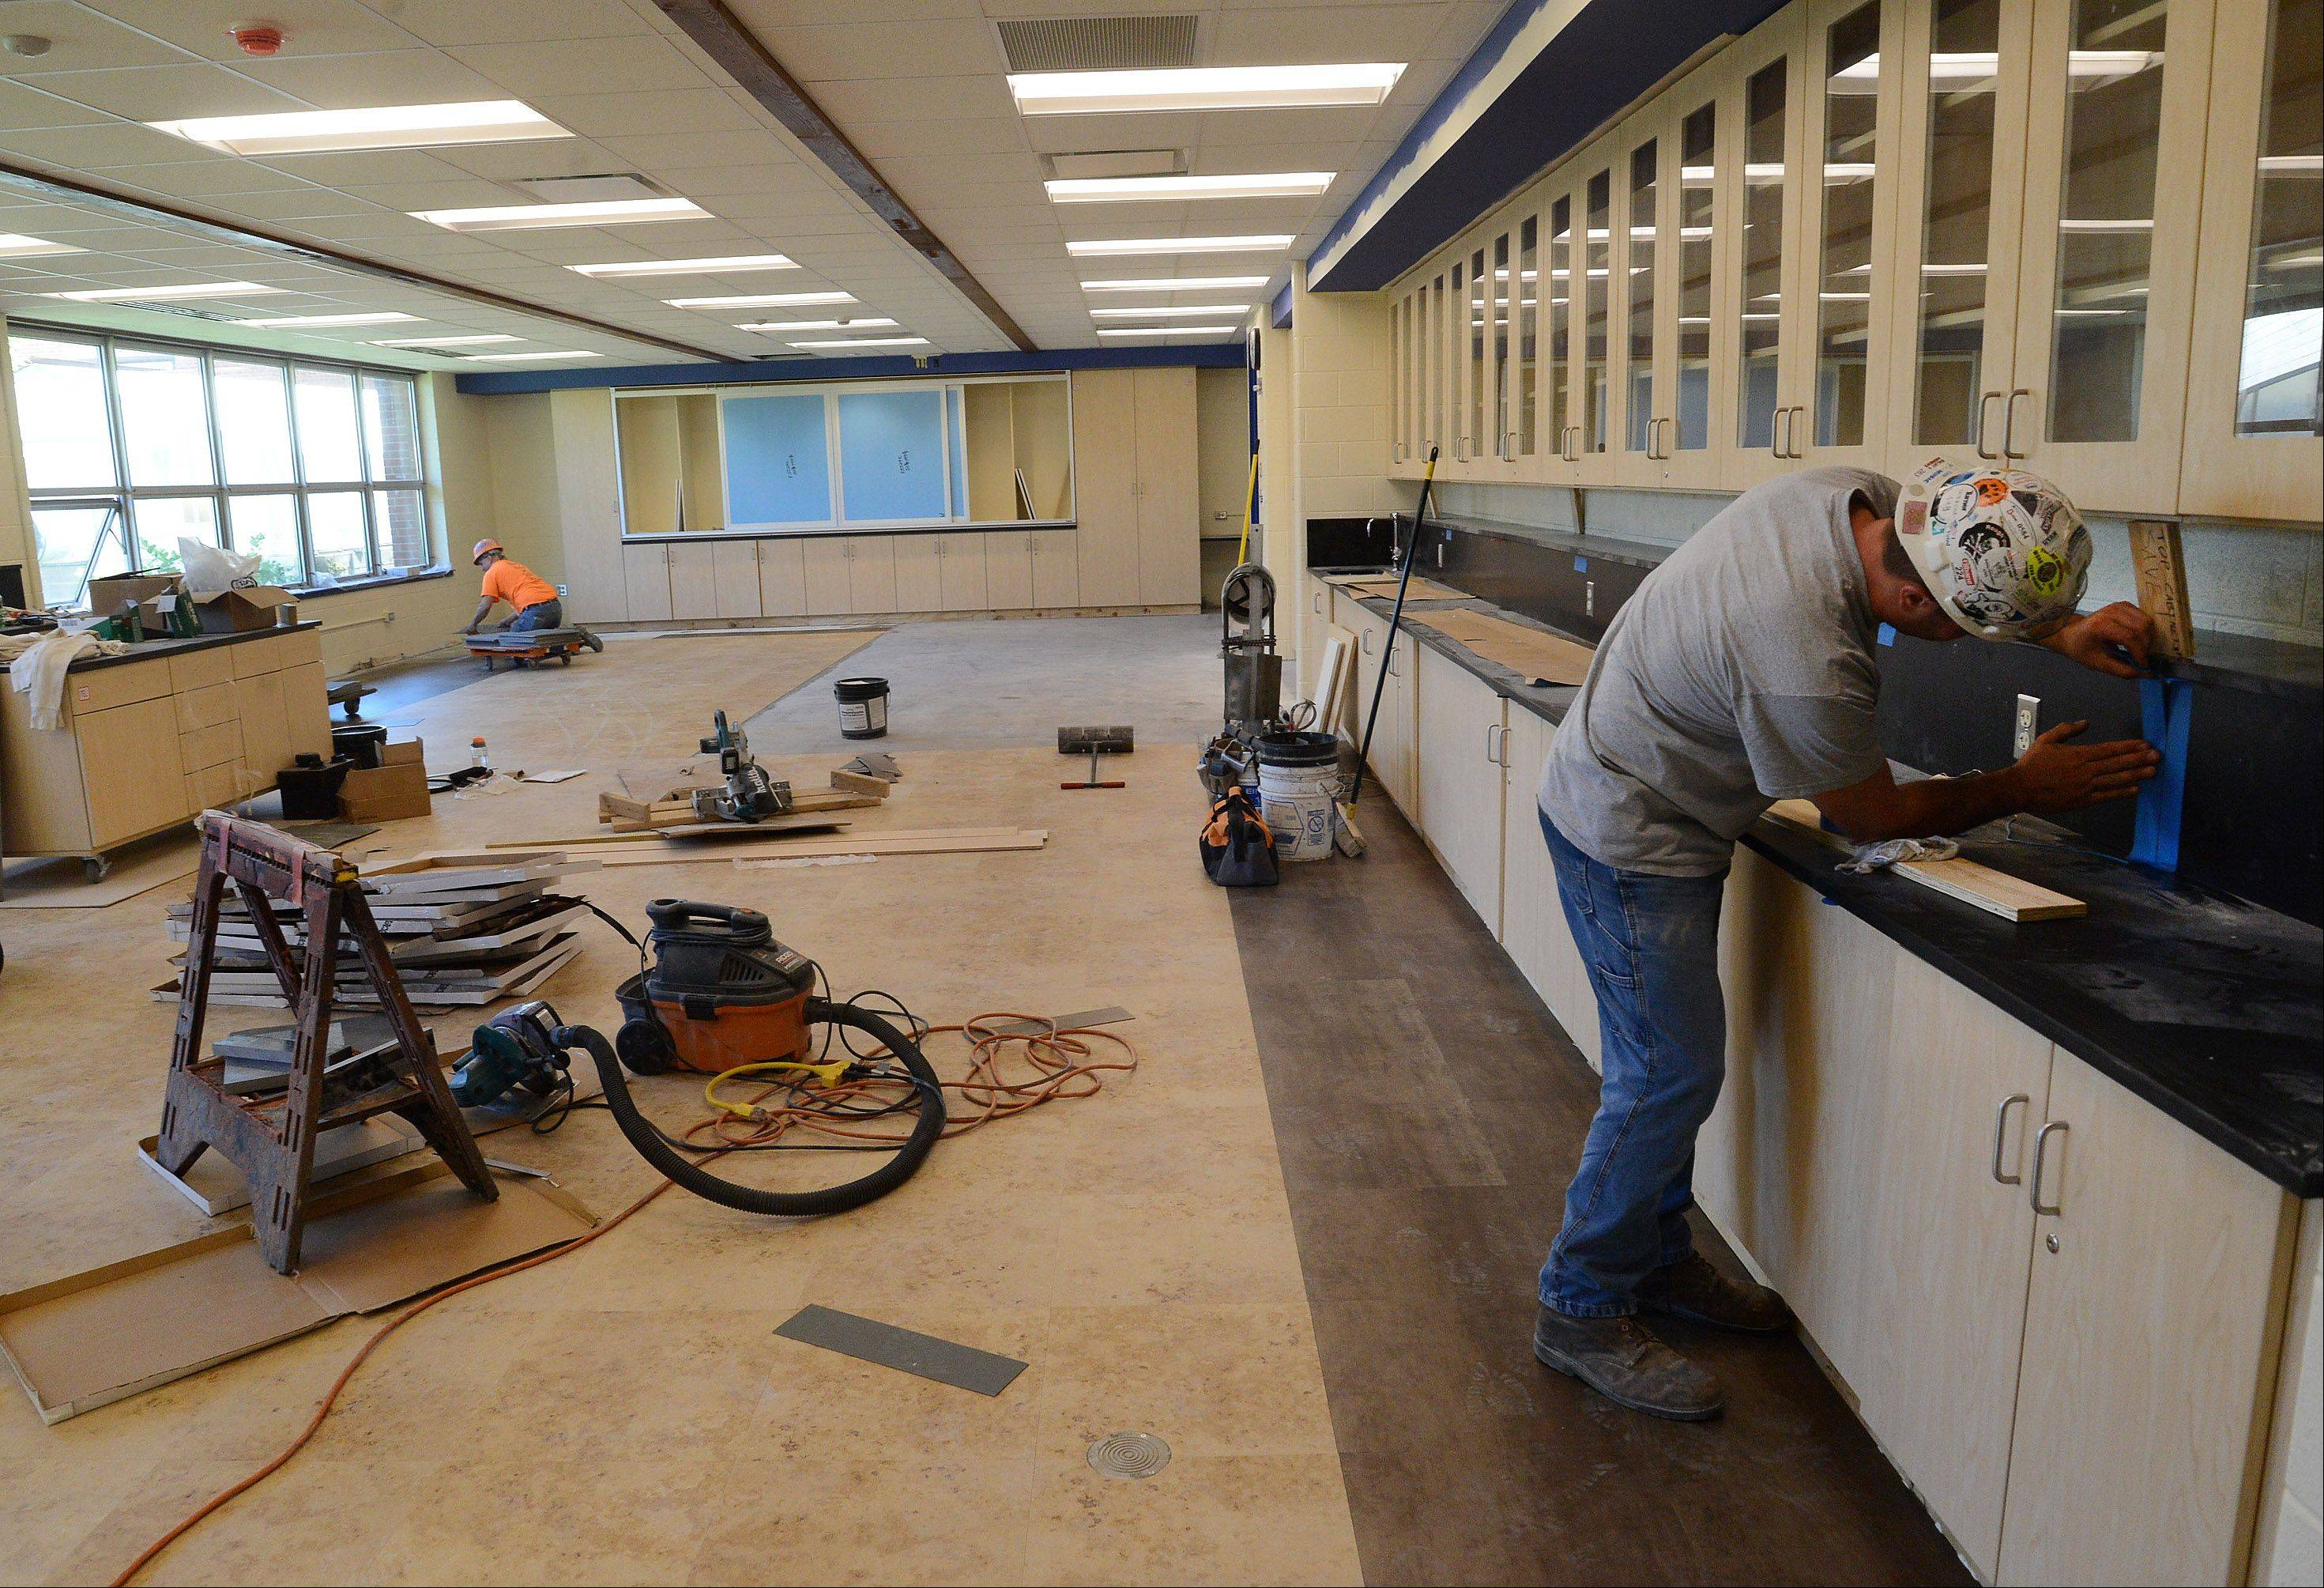 Two science labs were renovated as part of a $3.2 million renovation project at Oak Grove School in Green Oaks.